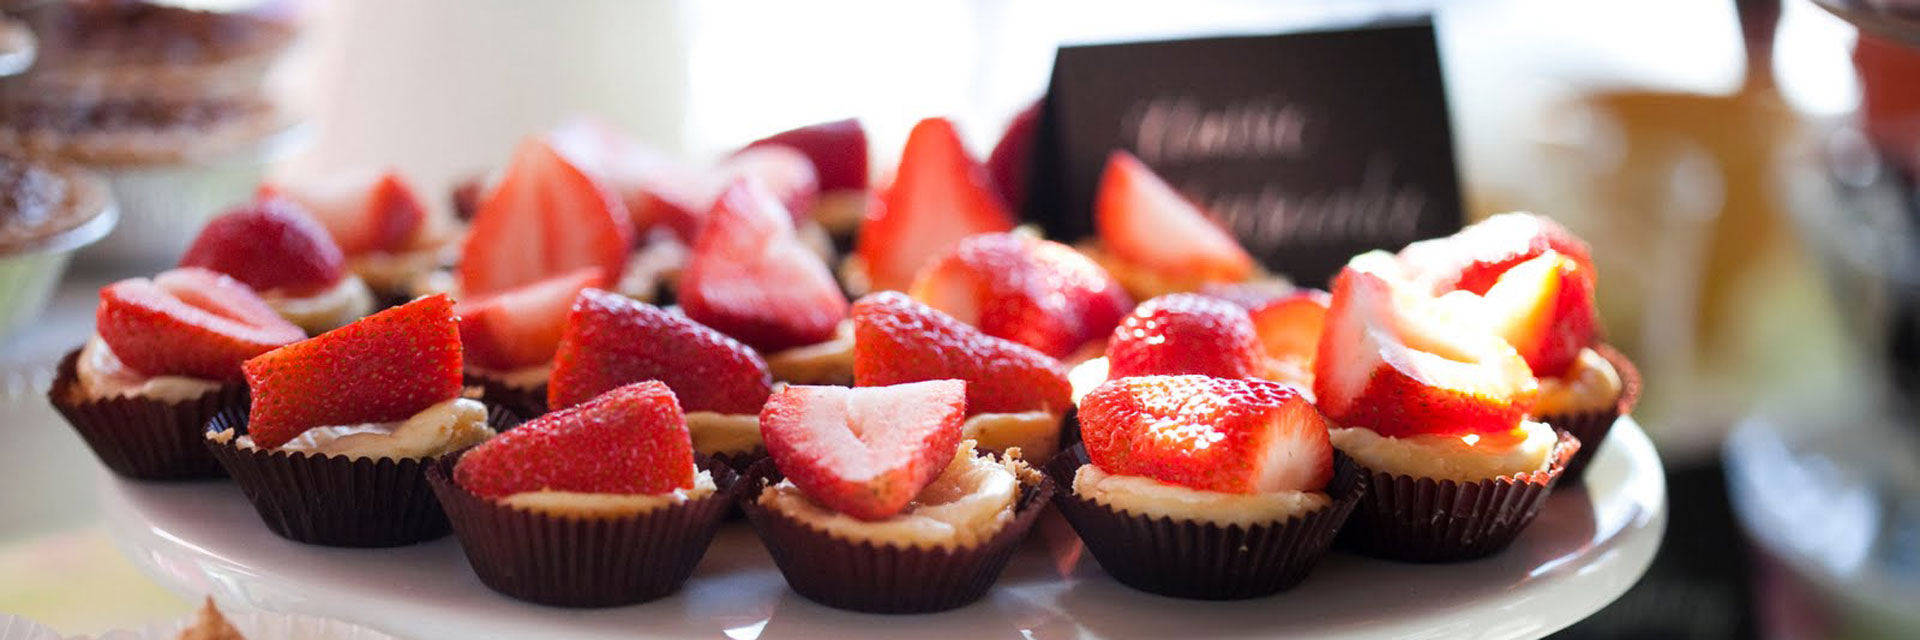 Cupcakes with fresh strawberries on top